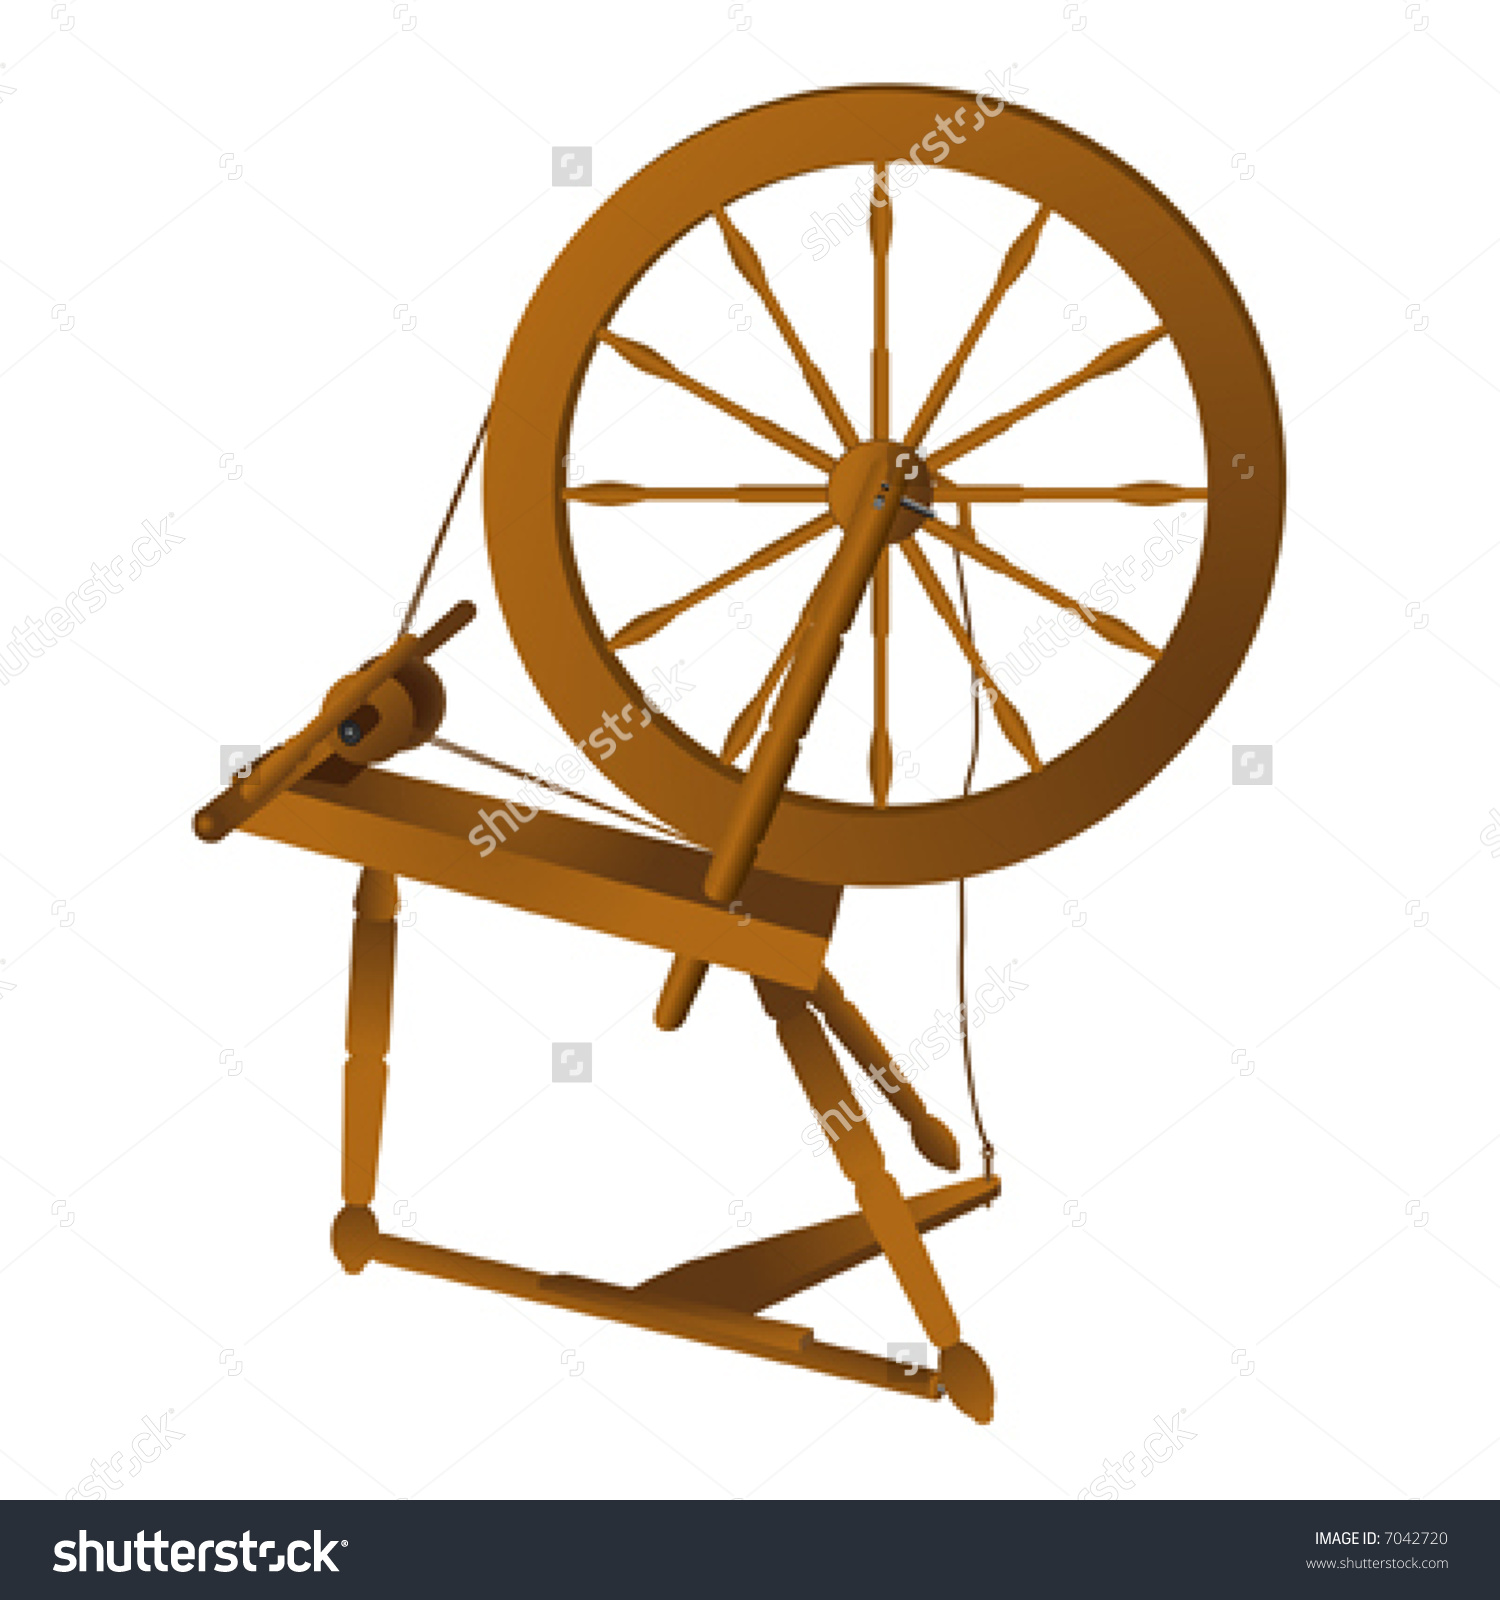 Spinning wheel clipart silhouette.